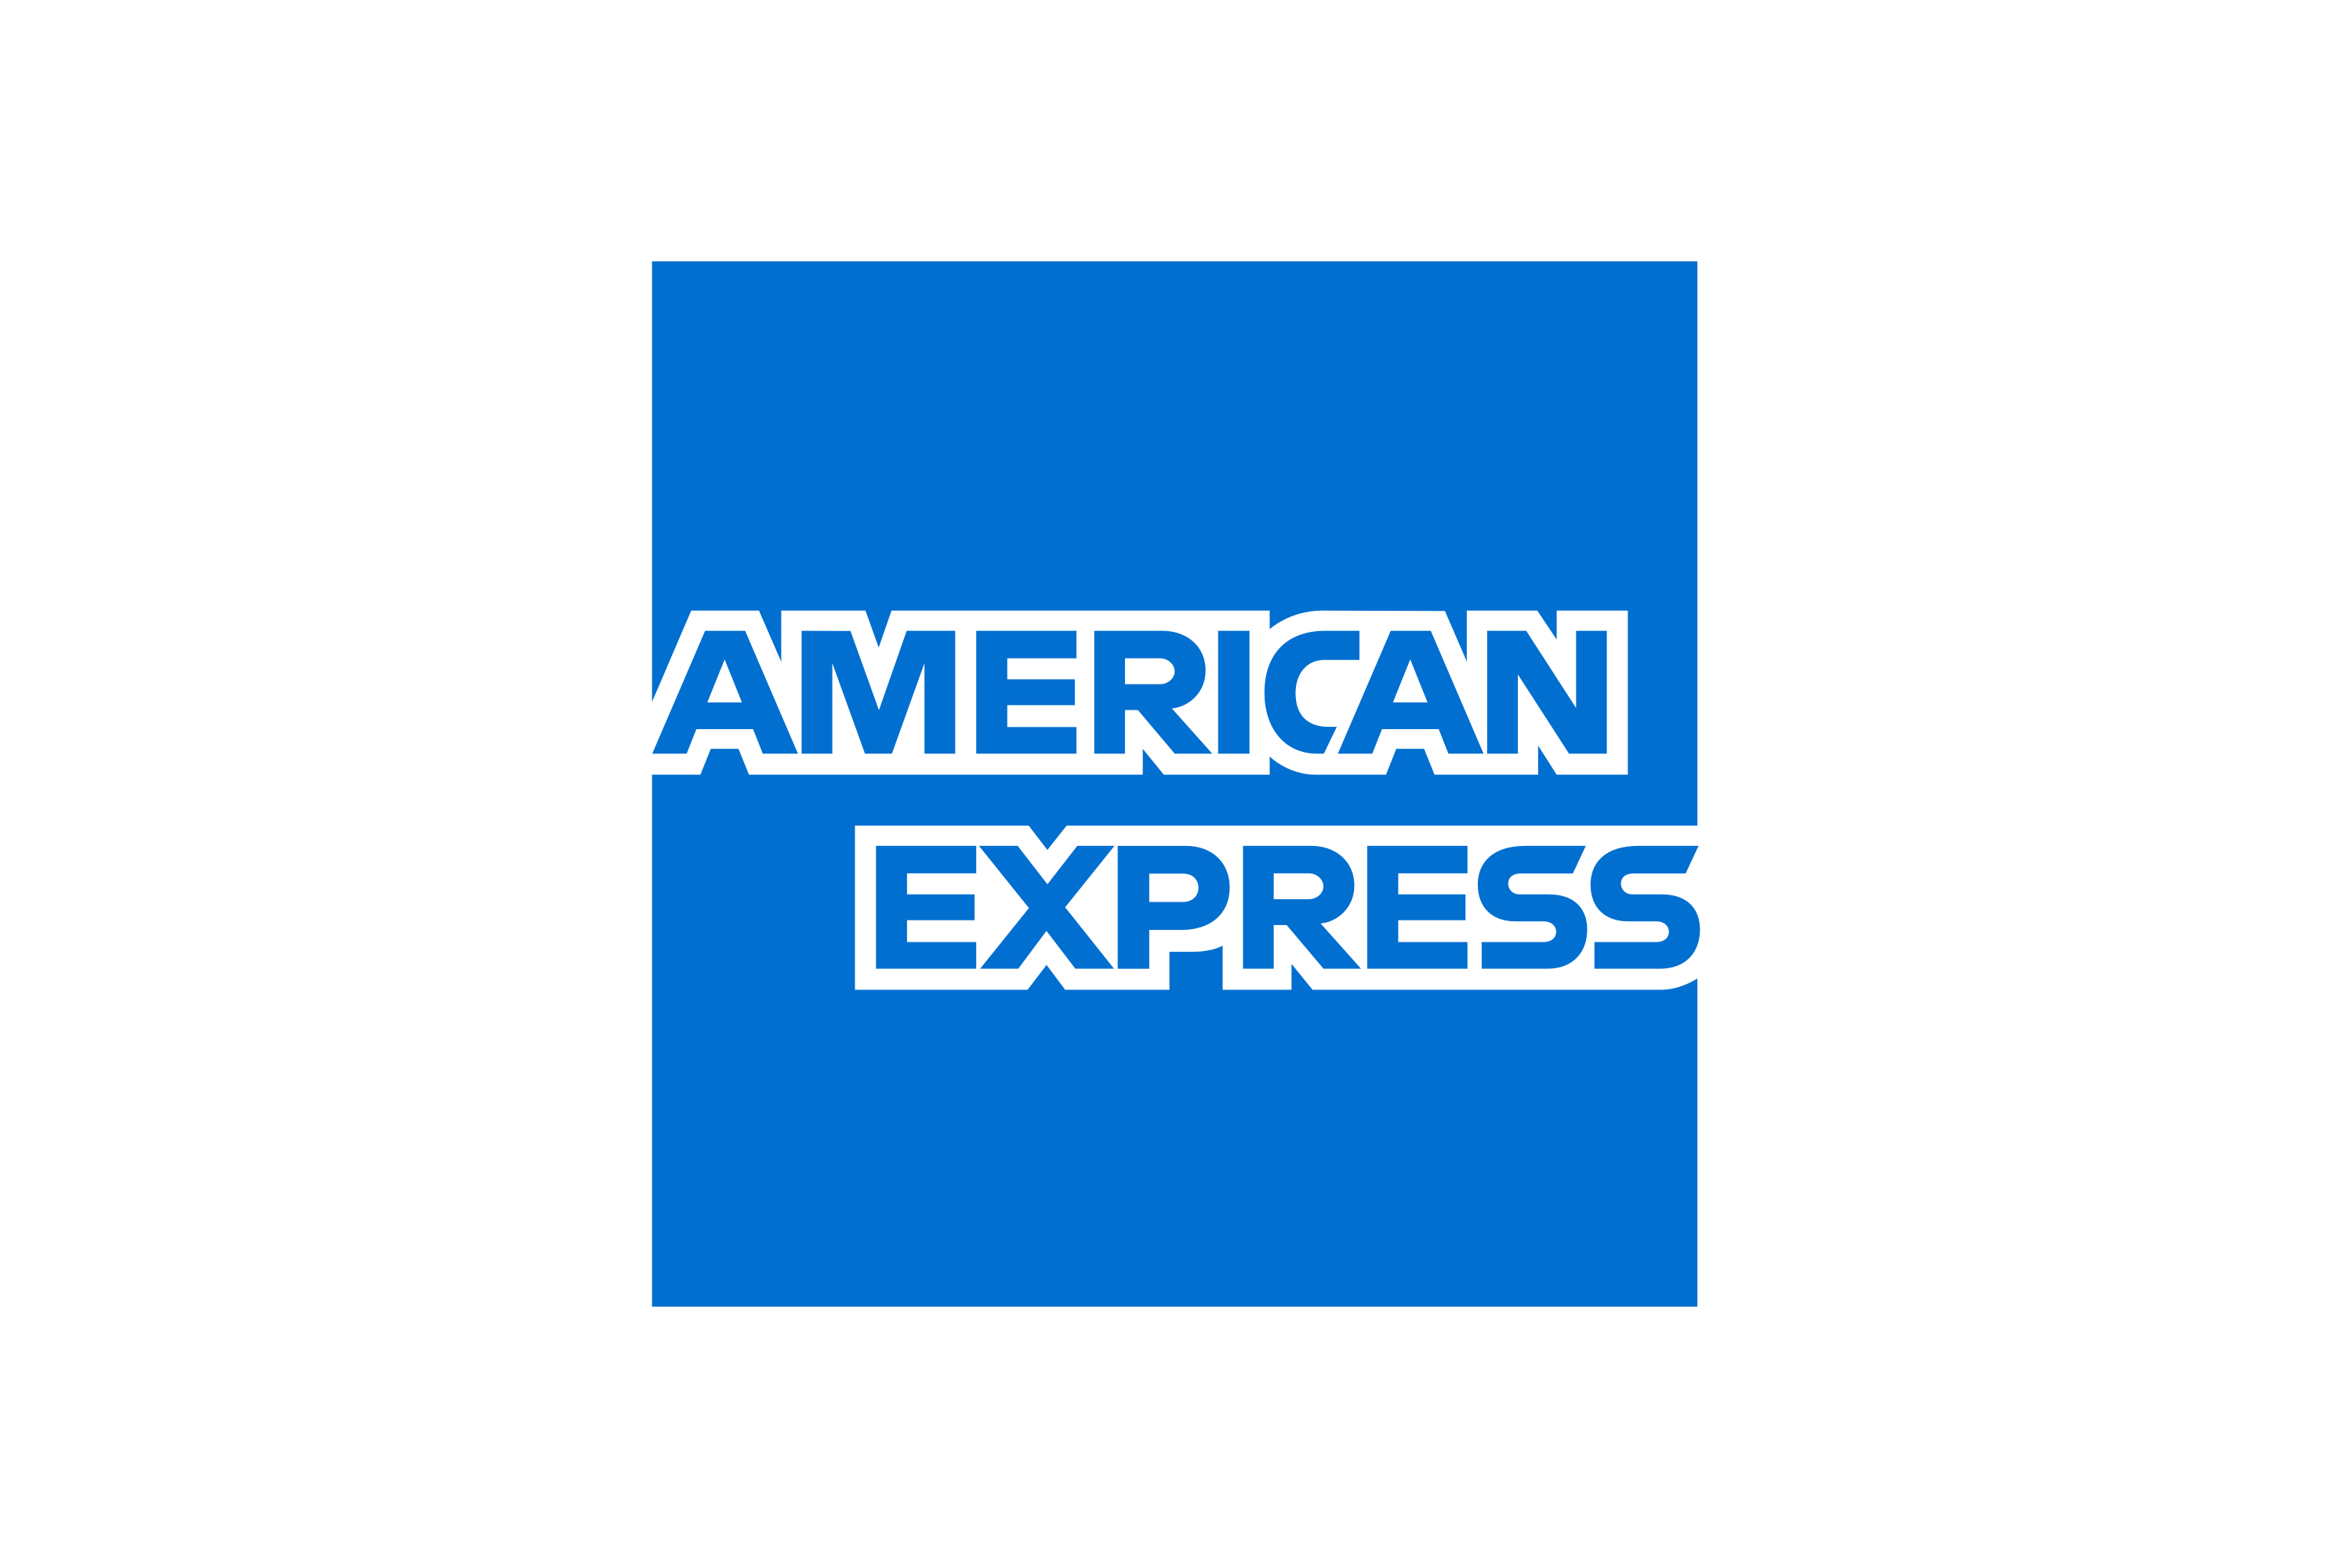 Download American Express (Amex) Logo in SVG Vector or PNG File